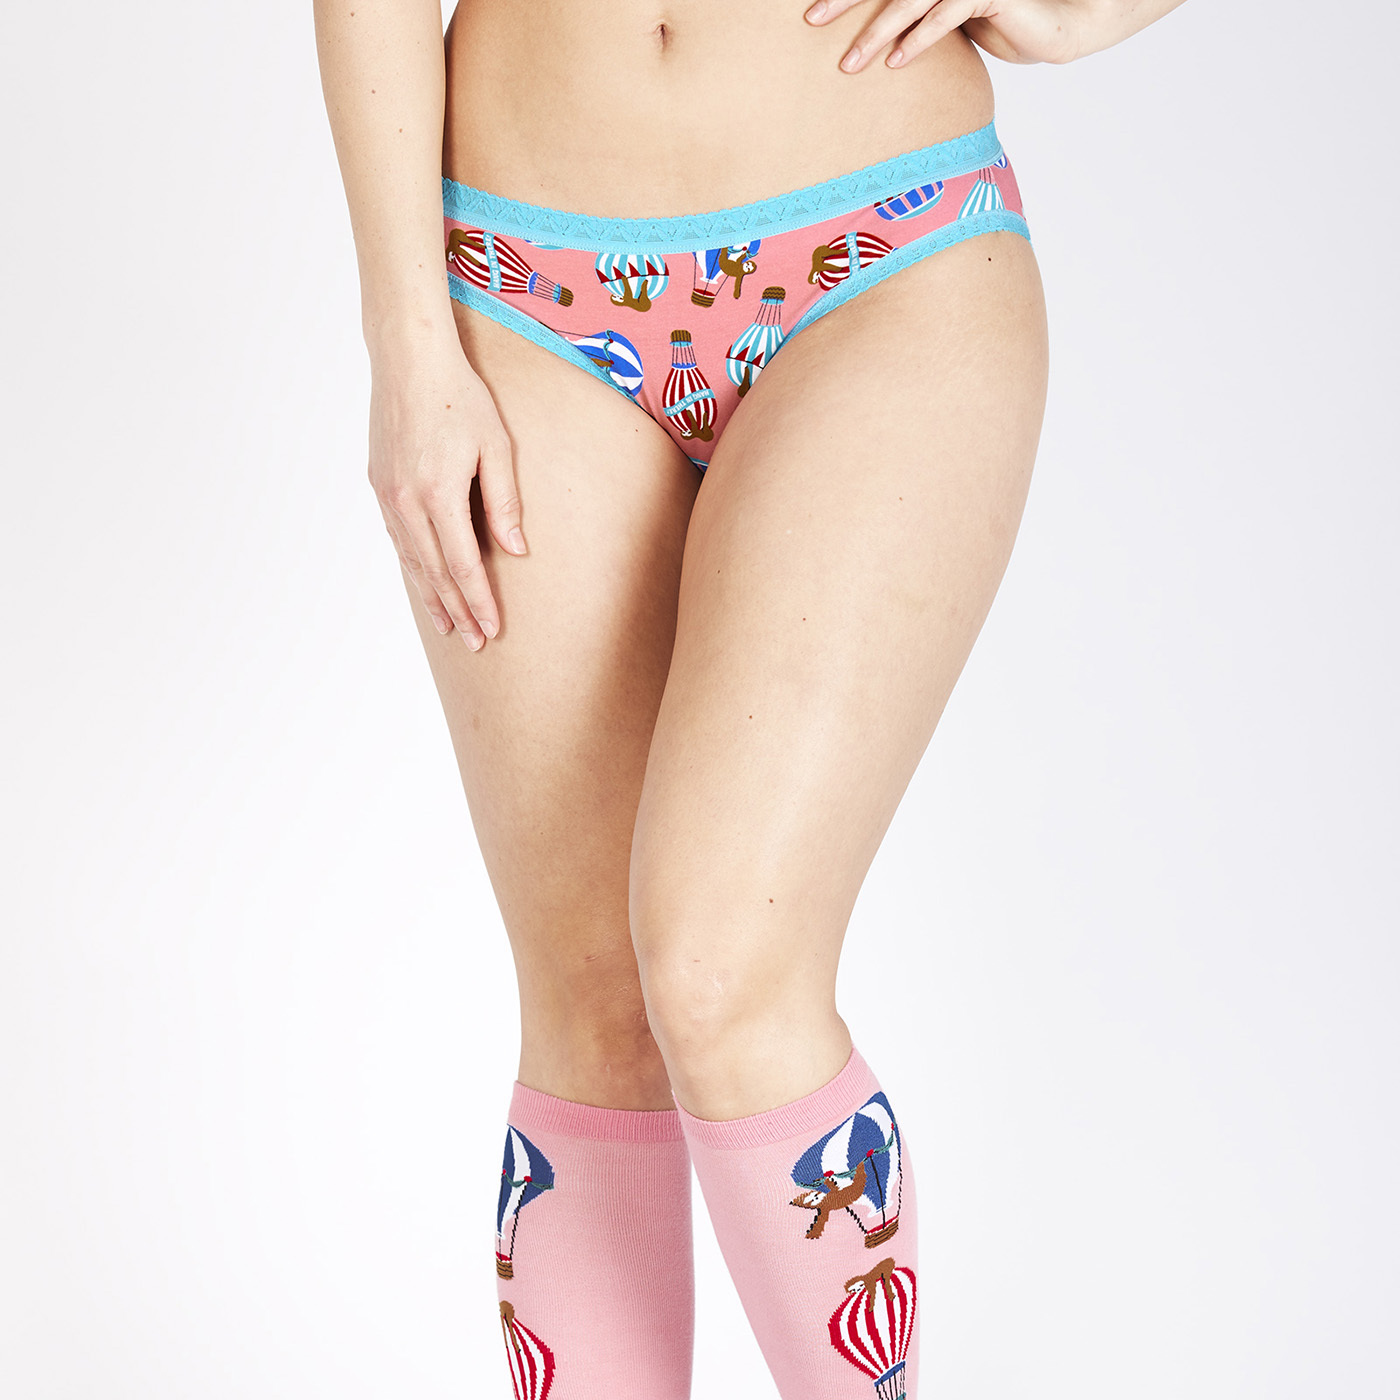 model wearing Hang In There - Sloth Bikini Underwear Pink - Sizes XS-XL